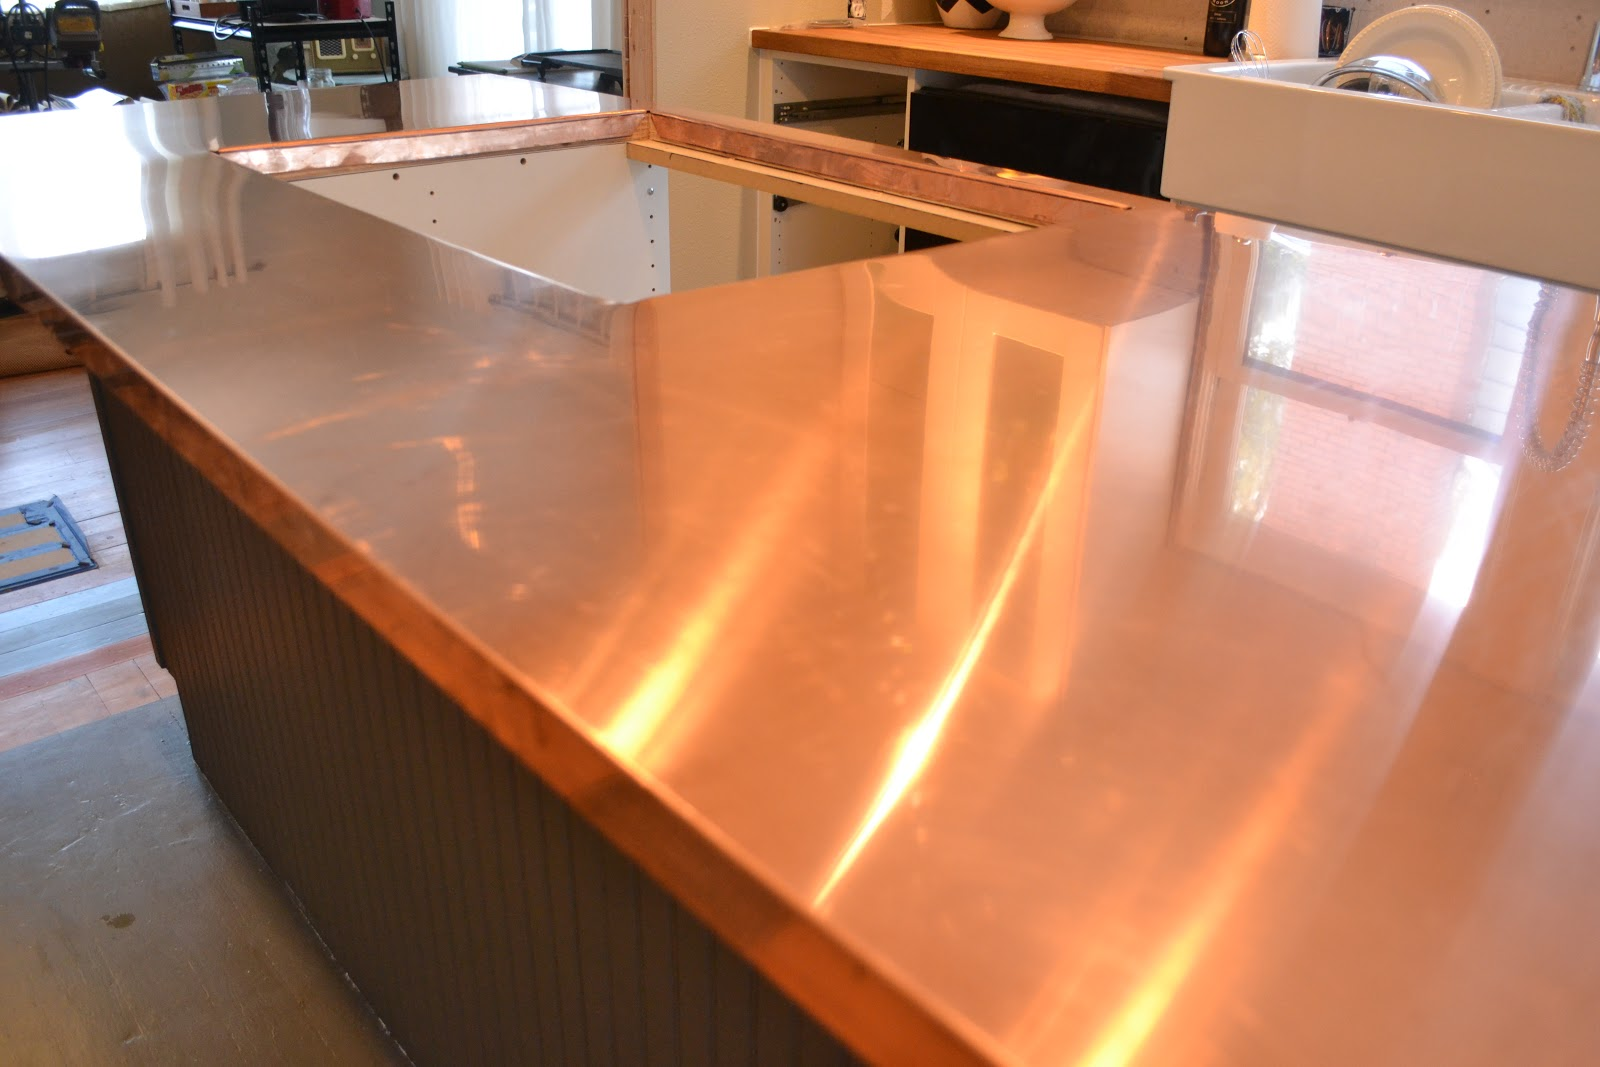 lowes about copper countertops laminate sinks bay unbelievable countertop with of stone cost counters formidable adorable estimator kitchen hampton